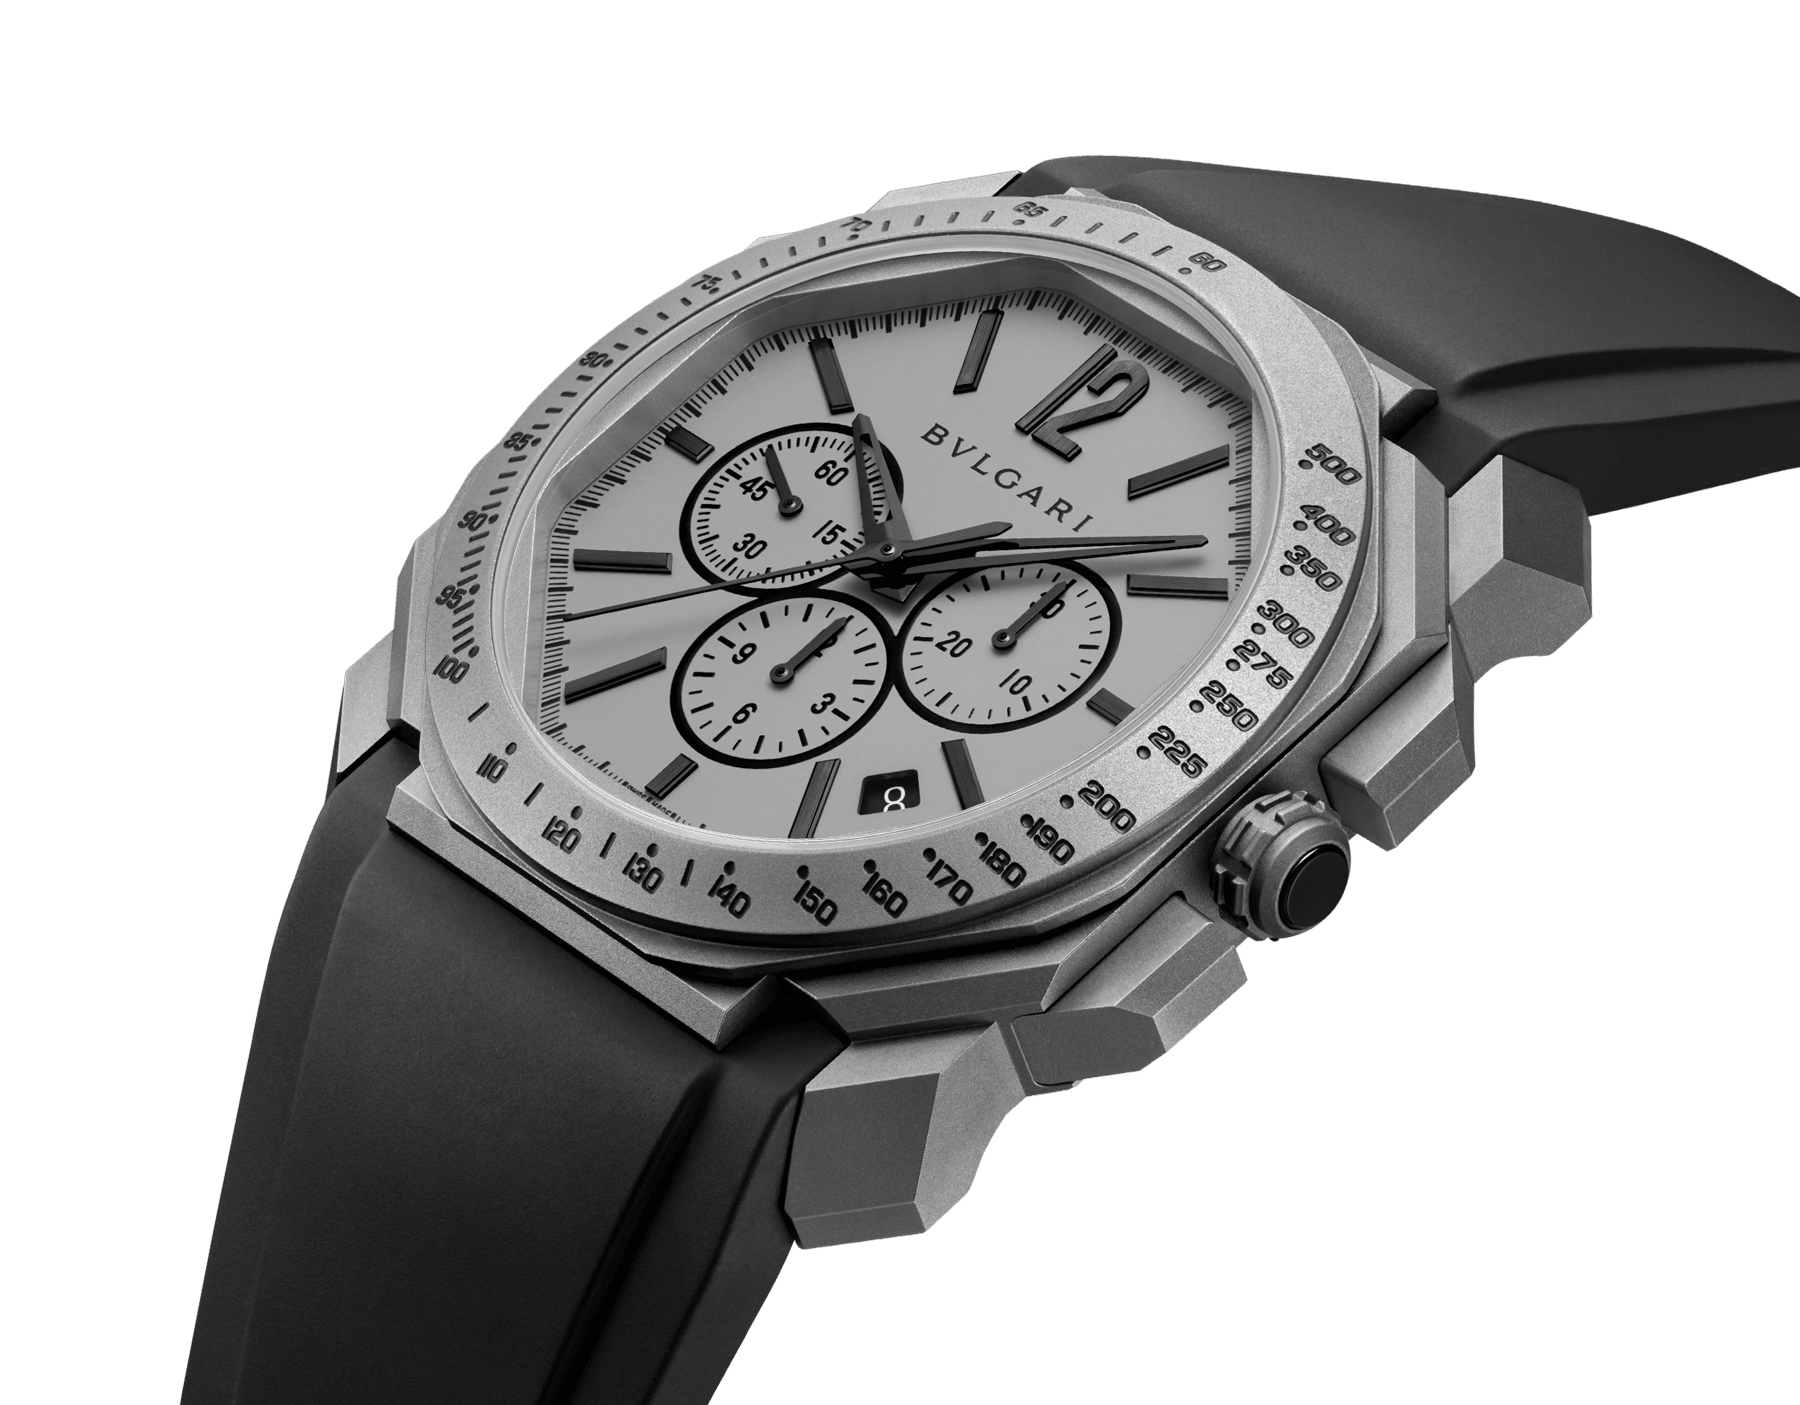 Octo L'Originale watch with mechanical manufacture movement, integrated high-frequency chronograph (5Hz), column wheel mechanism, silicon escapement, automatic winding and date, titanium case and dial, and black rubber bracelet 102859 image 2